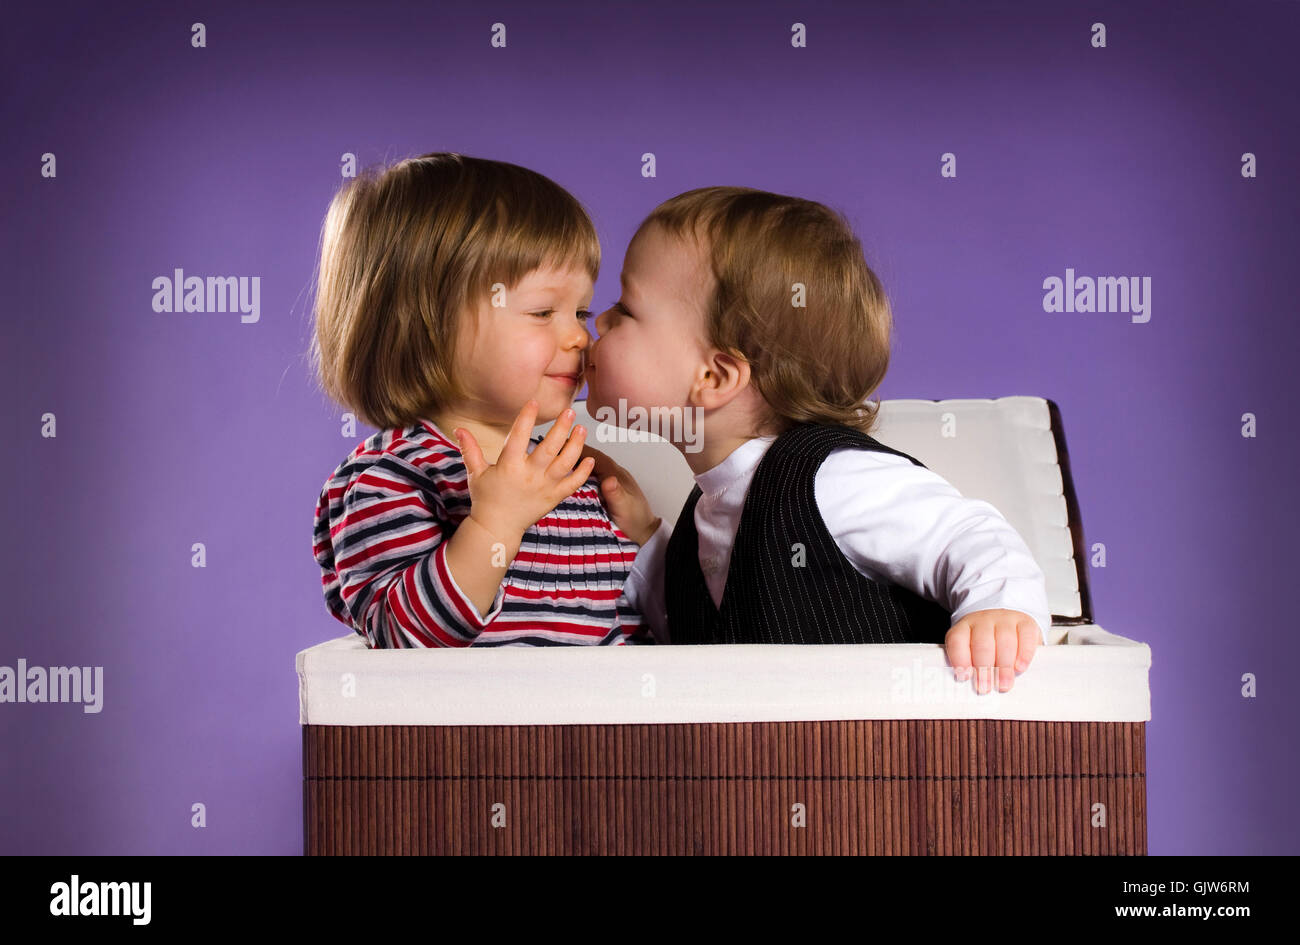 romantic affection endearing - Stock Image